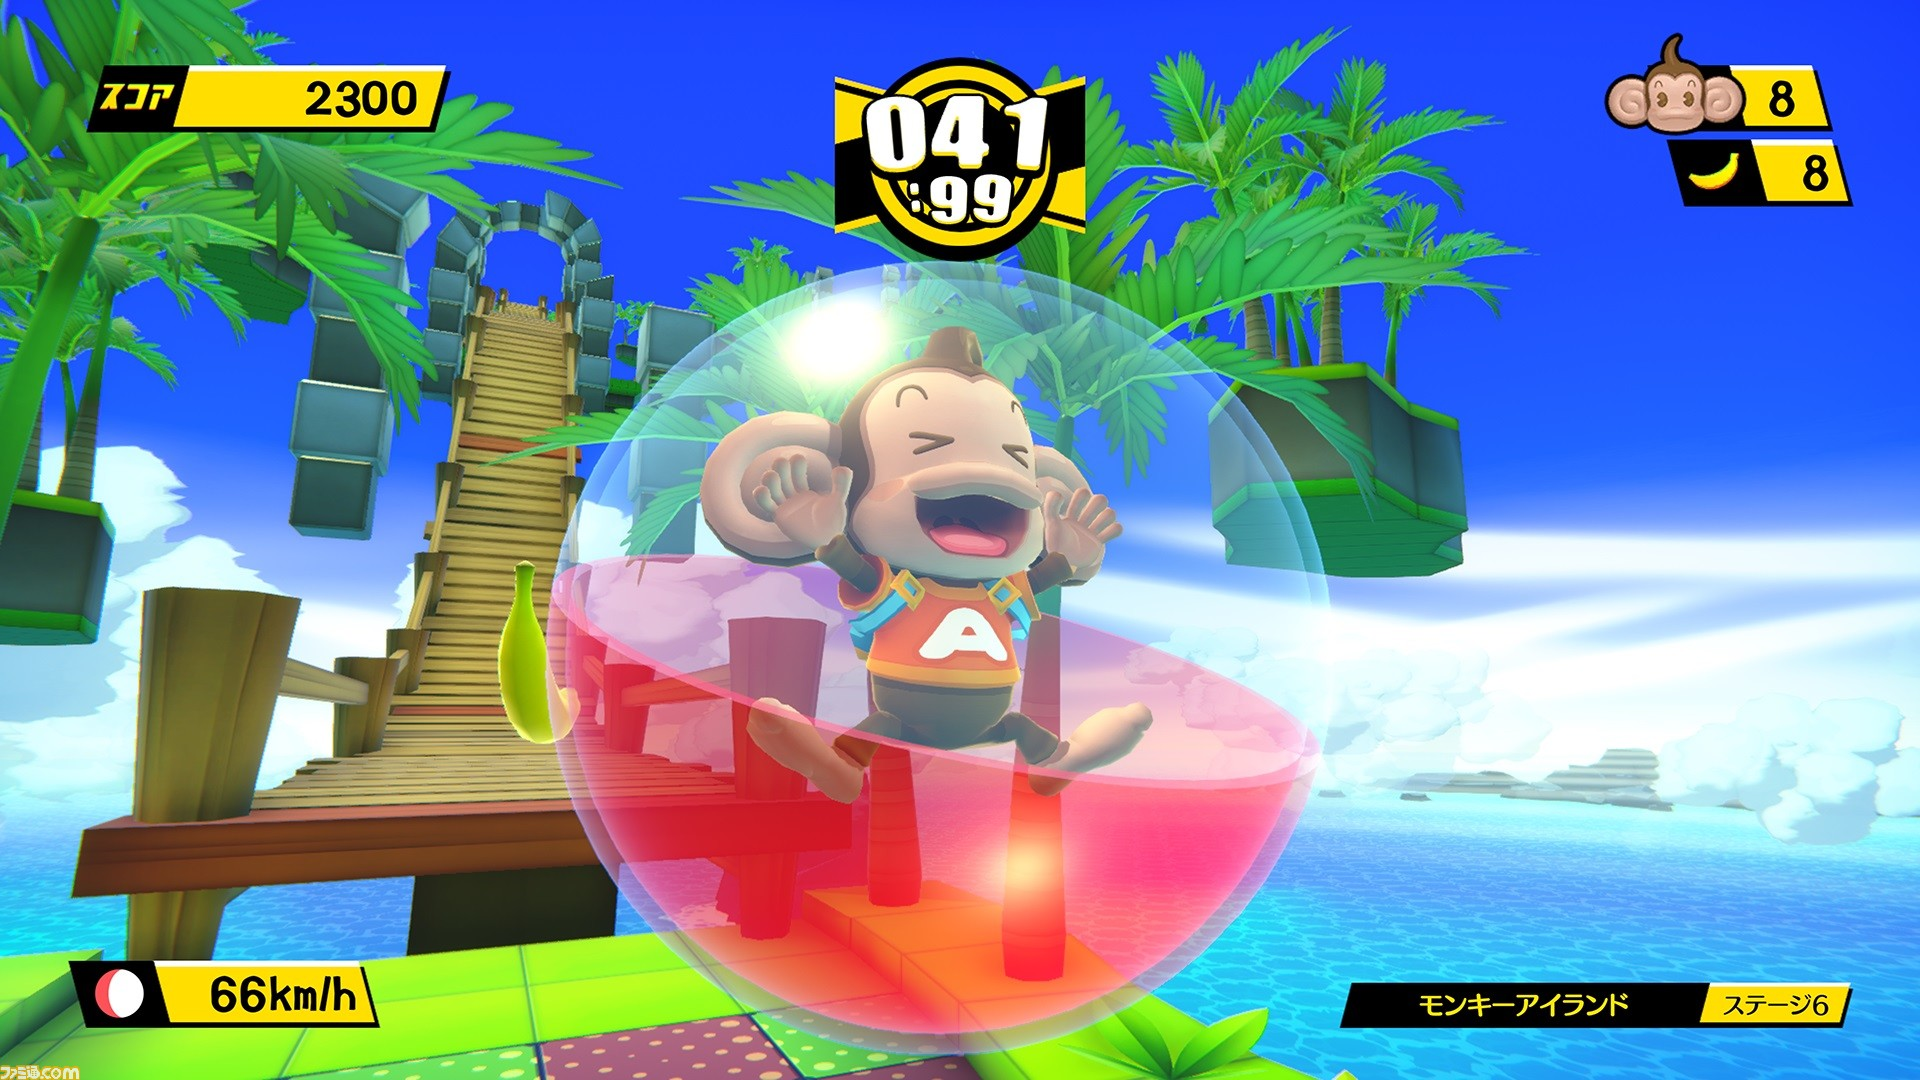 Super Monkey Ball Banana Blitz remake announced for Switch